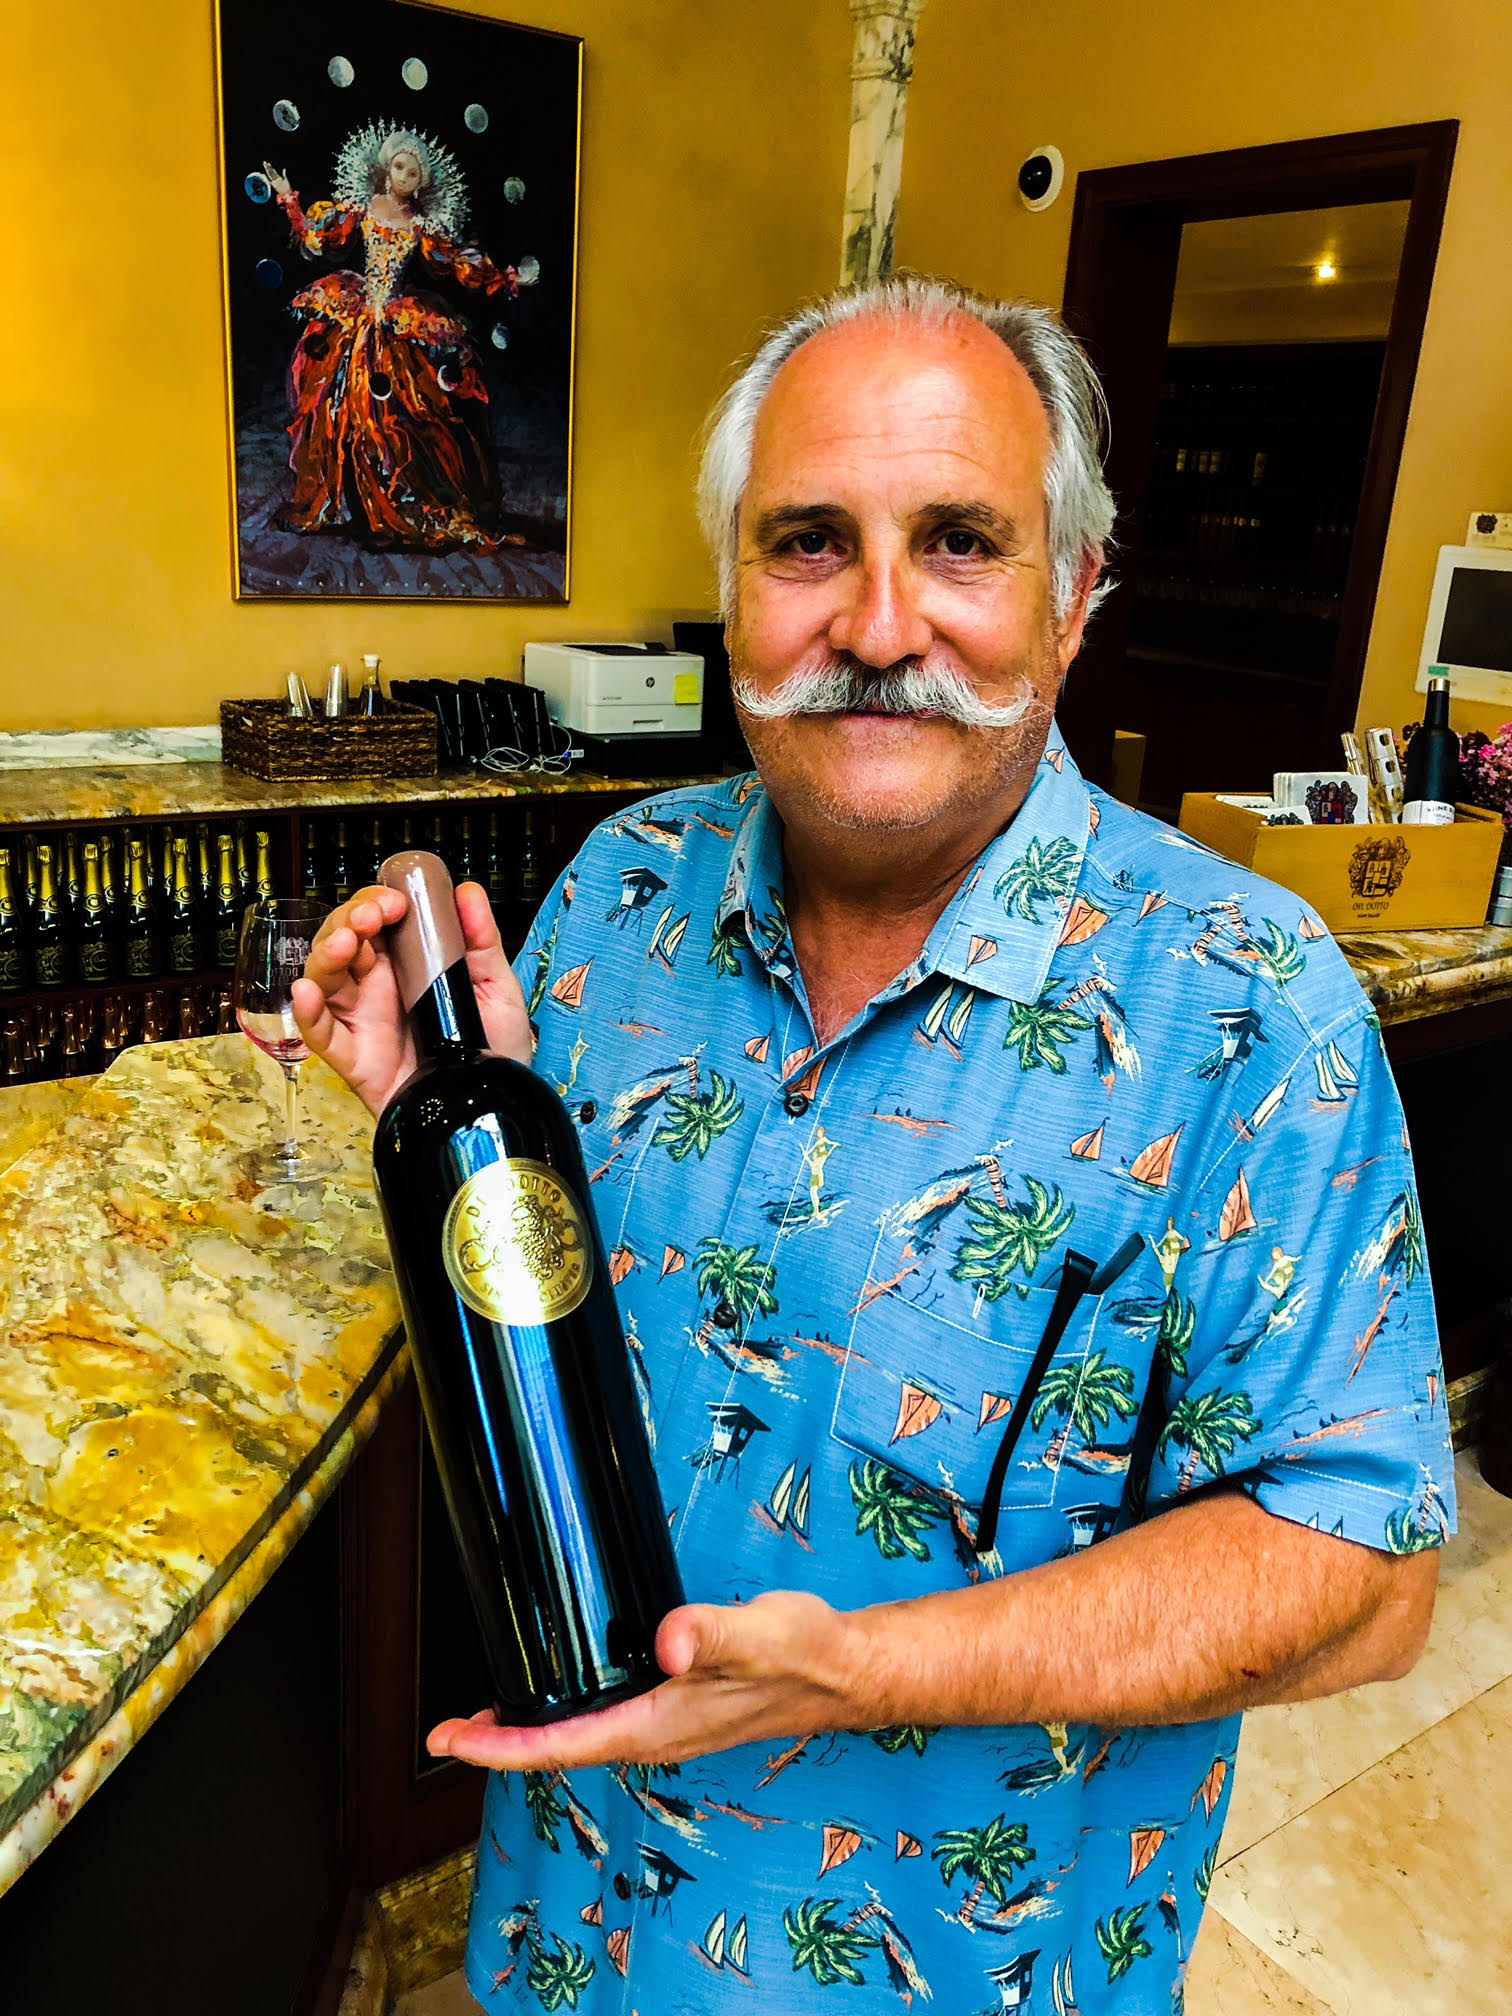 Dave Del Dotto started Del Dotto Vineyards all the way back in 1993. Del Dotto has one of the best overall lineups of wines, which ranges from sparkling wine to rose to port styled wines and Cabernet Sauvignon, that I have sampled this year in all of North America.